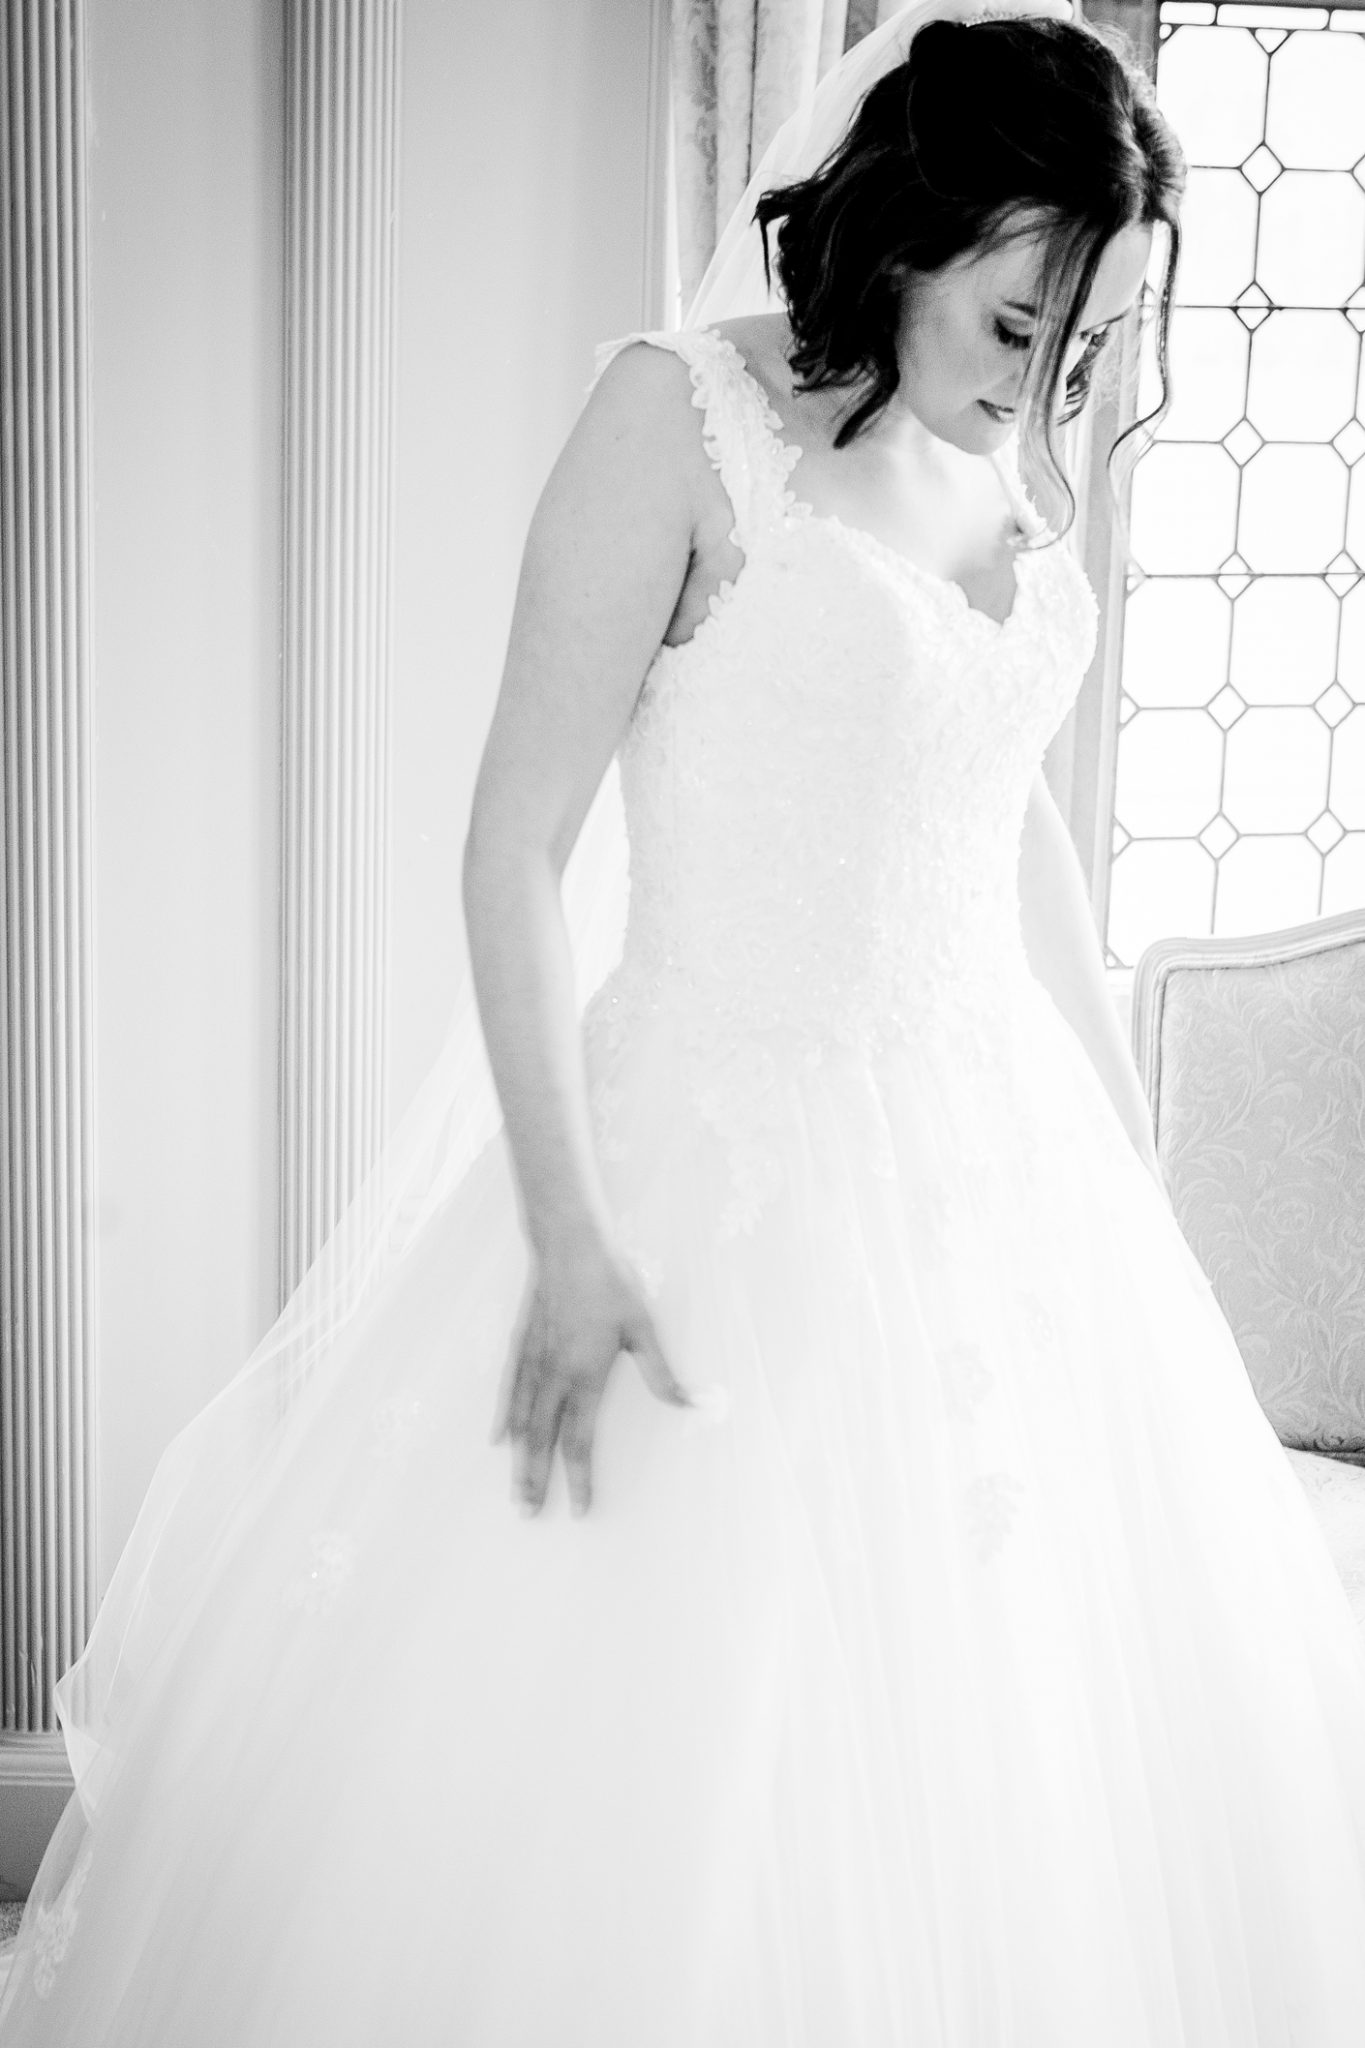 the-bride-taken-by-the-wedding-photographer-at-thornton-manor